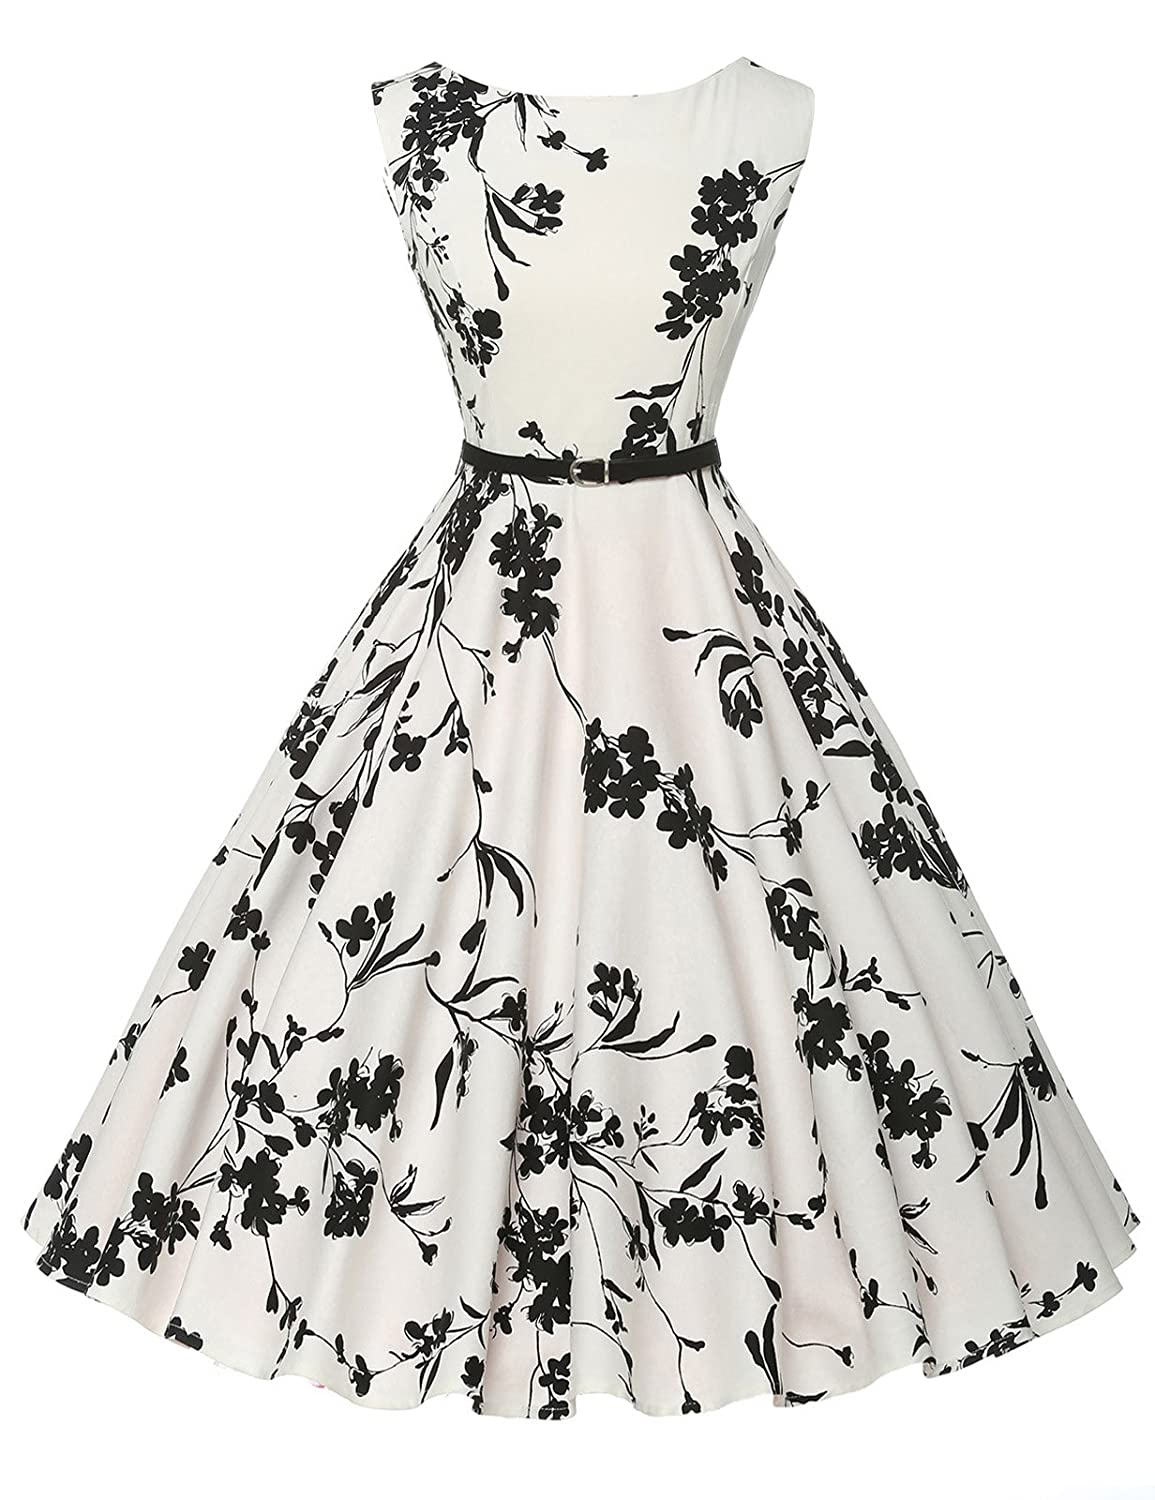 1950s Prom Dresses BoatNeck Sleeveless Vintage Tea Dress with Belt $30.99 AT vintagedancer.com